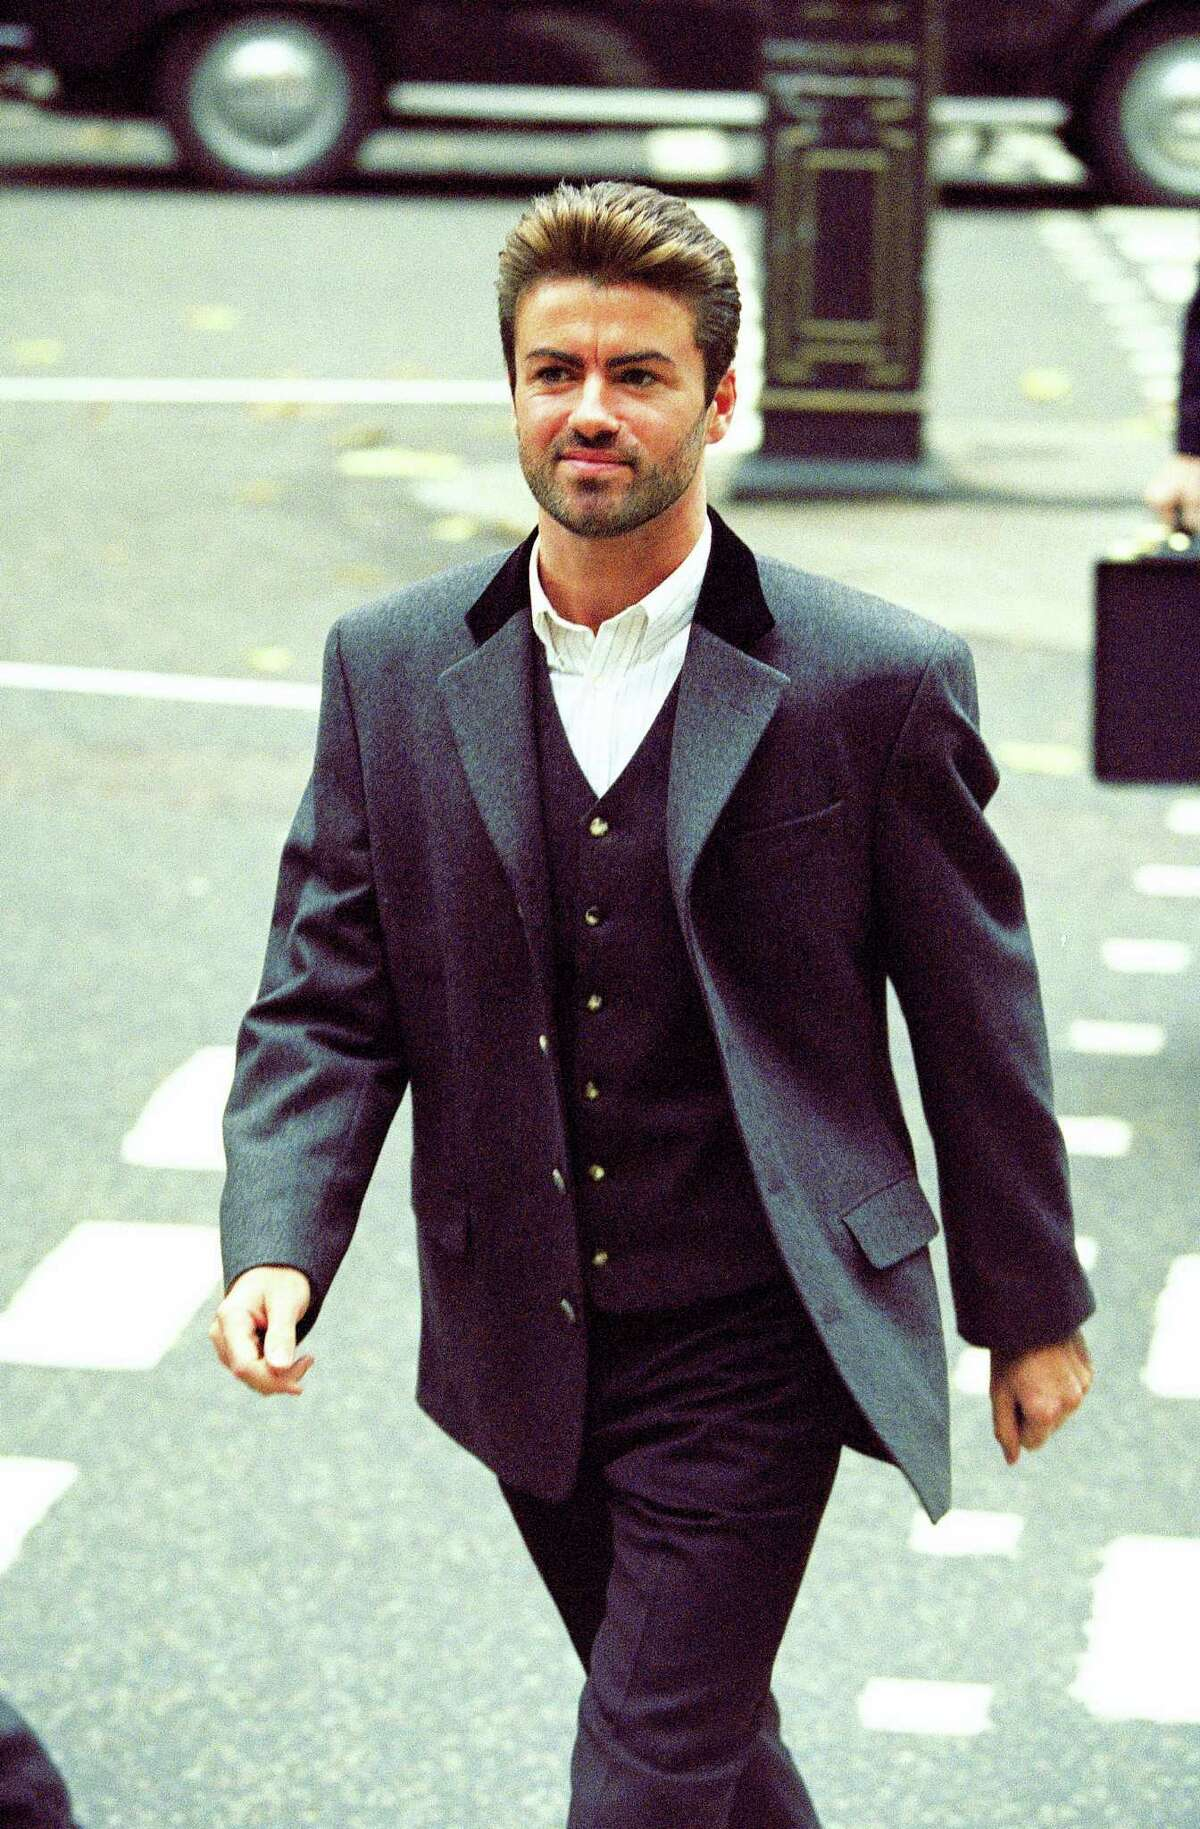 In this Oct. 28, 1993, file photo, pop star George Michael arrives to give evidence at the Royal Courts of Justice in London. Michael was petitioning the court to release him from his contract with Sony Music Entertainment (UK) Ltd. Michael, who rocketed to stardom with WHAM! and went on to enjoy a long and celebrated solo career lined with controversies, has died, his publicist said Sunday, Dec. 25, 2016. He was 53. PHOTO BY Alistair Grant - AP Photo